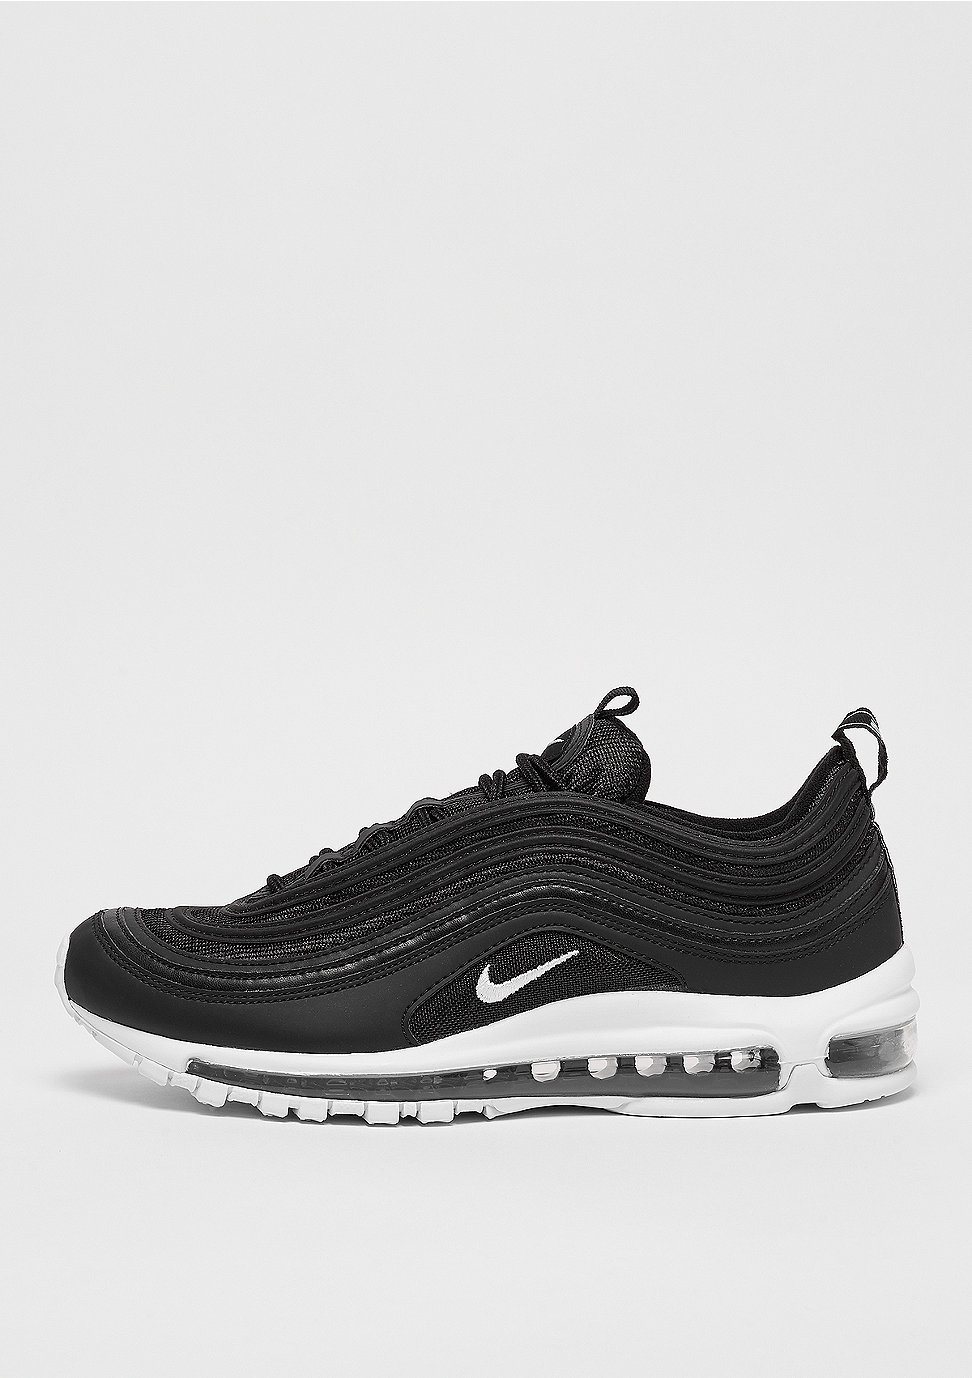 Ordina Sneaker NIKE Air Max 97 blackwhite su SNIPES